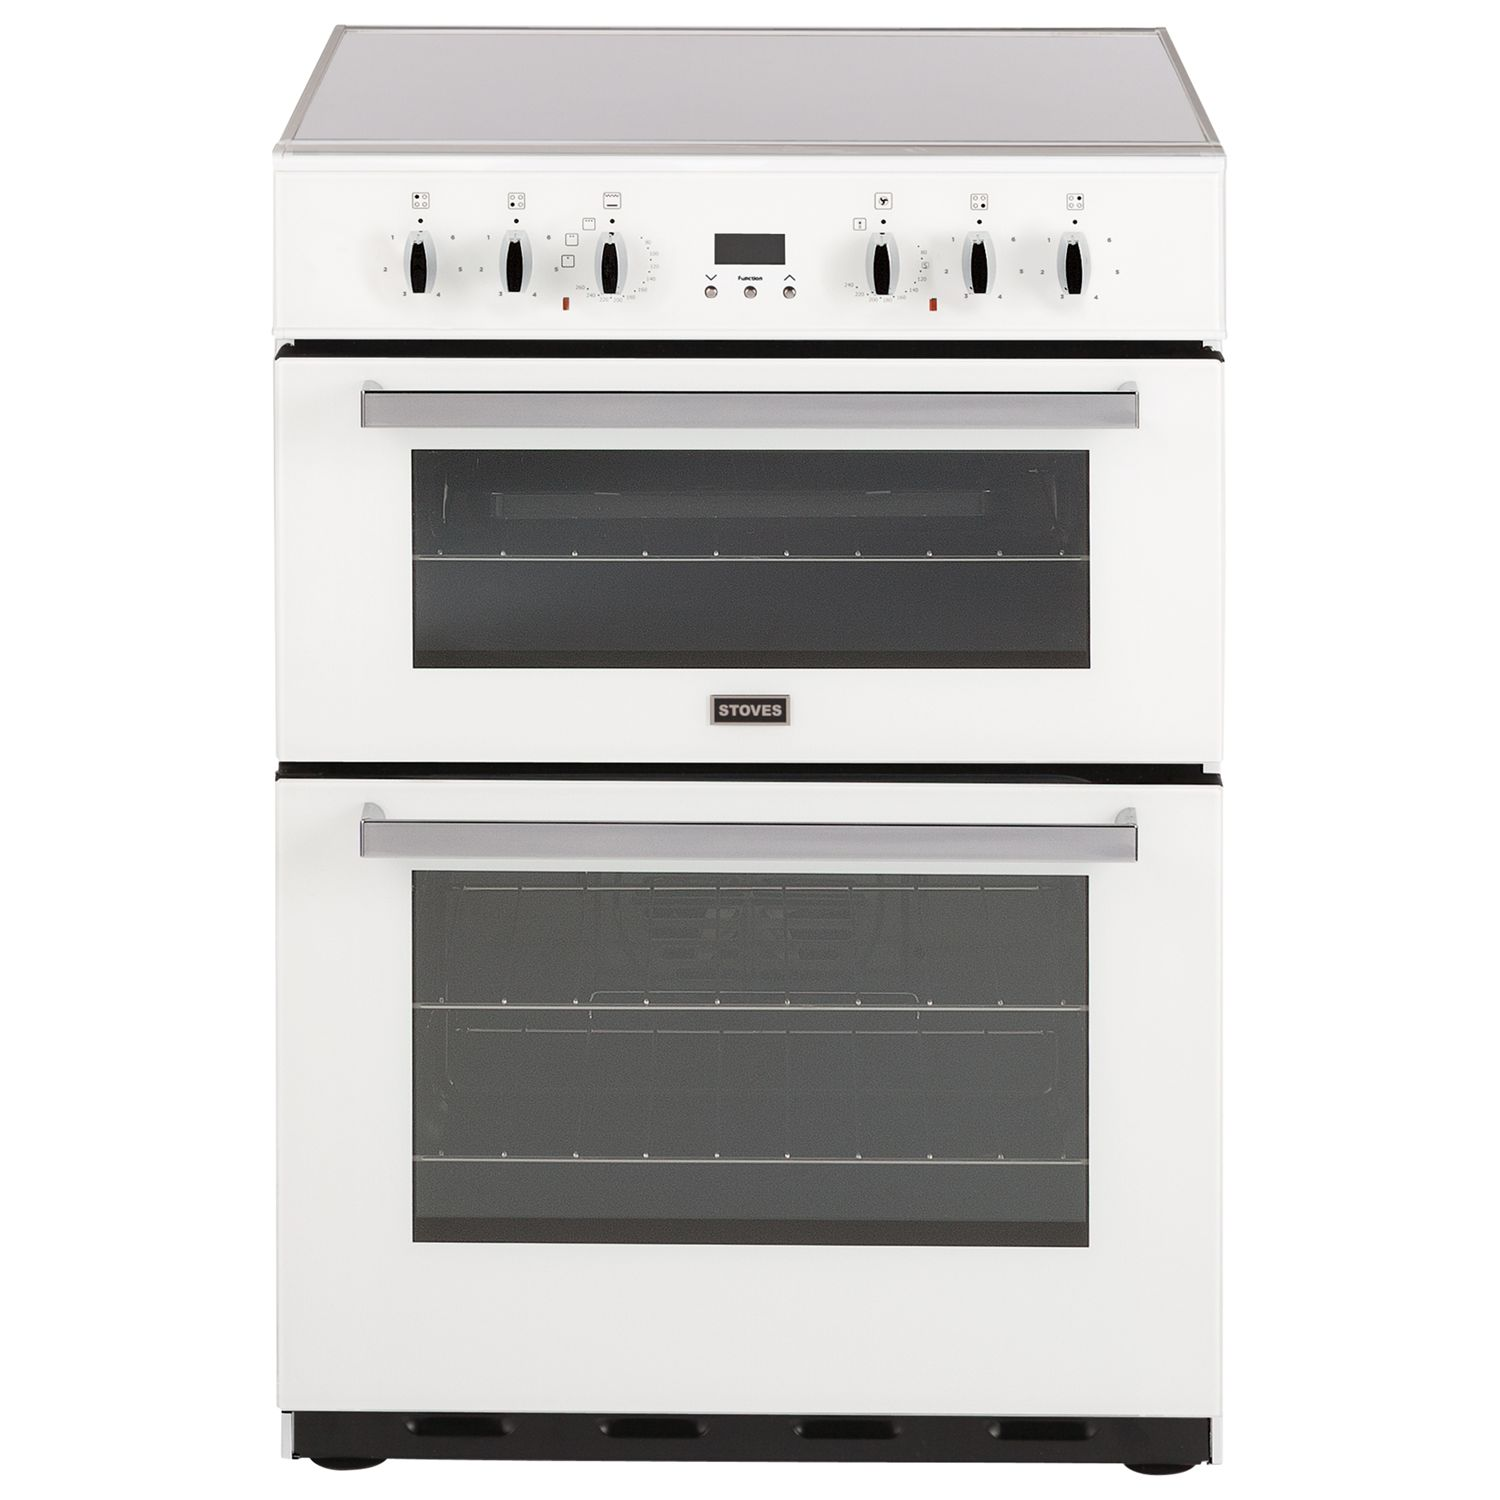 Stoves Stoves SEC60DOP Electric Cooker, White